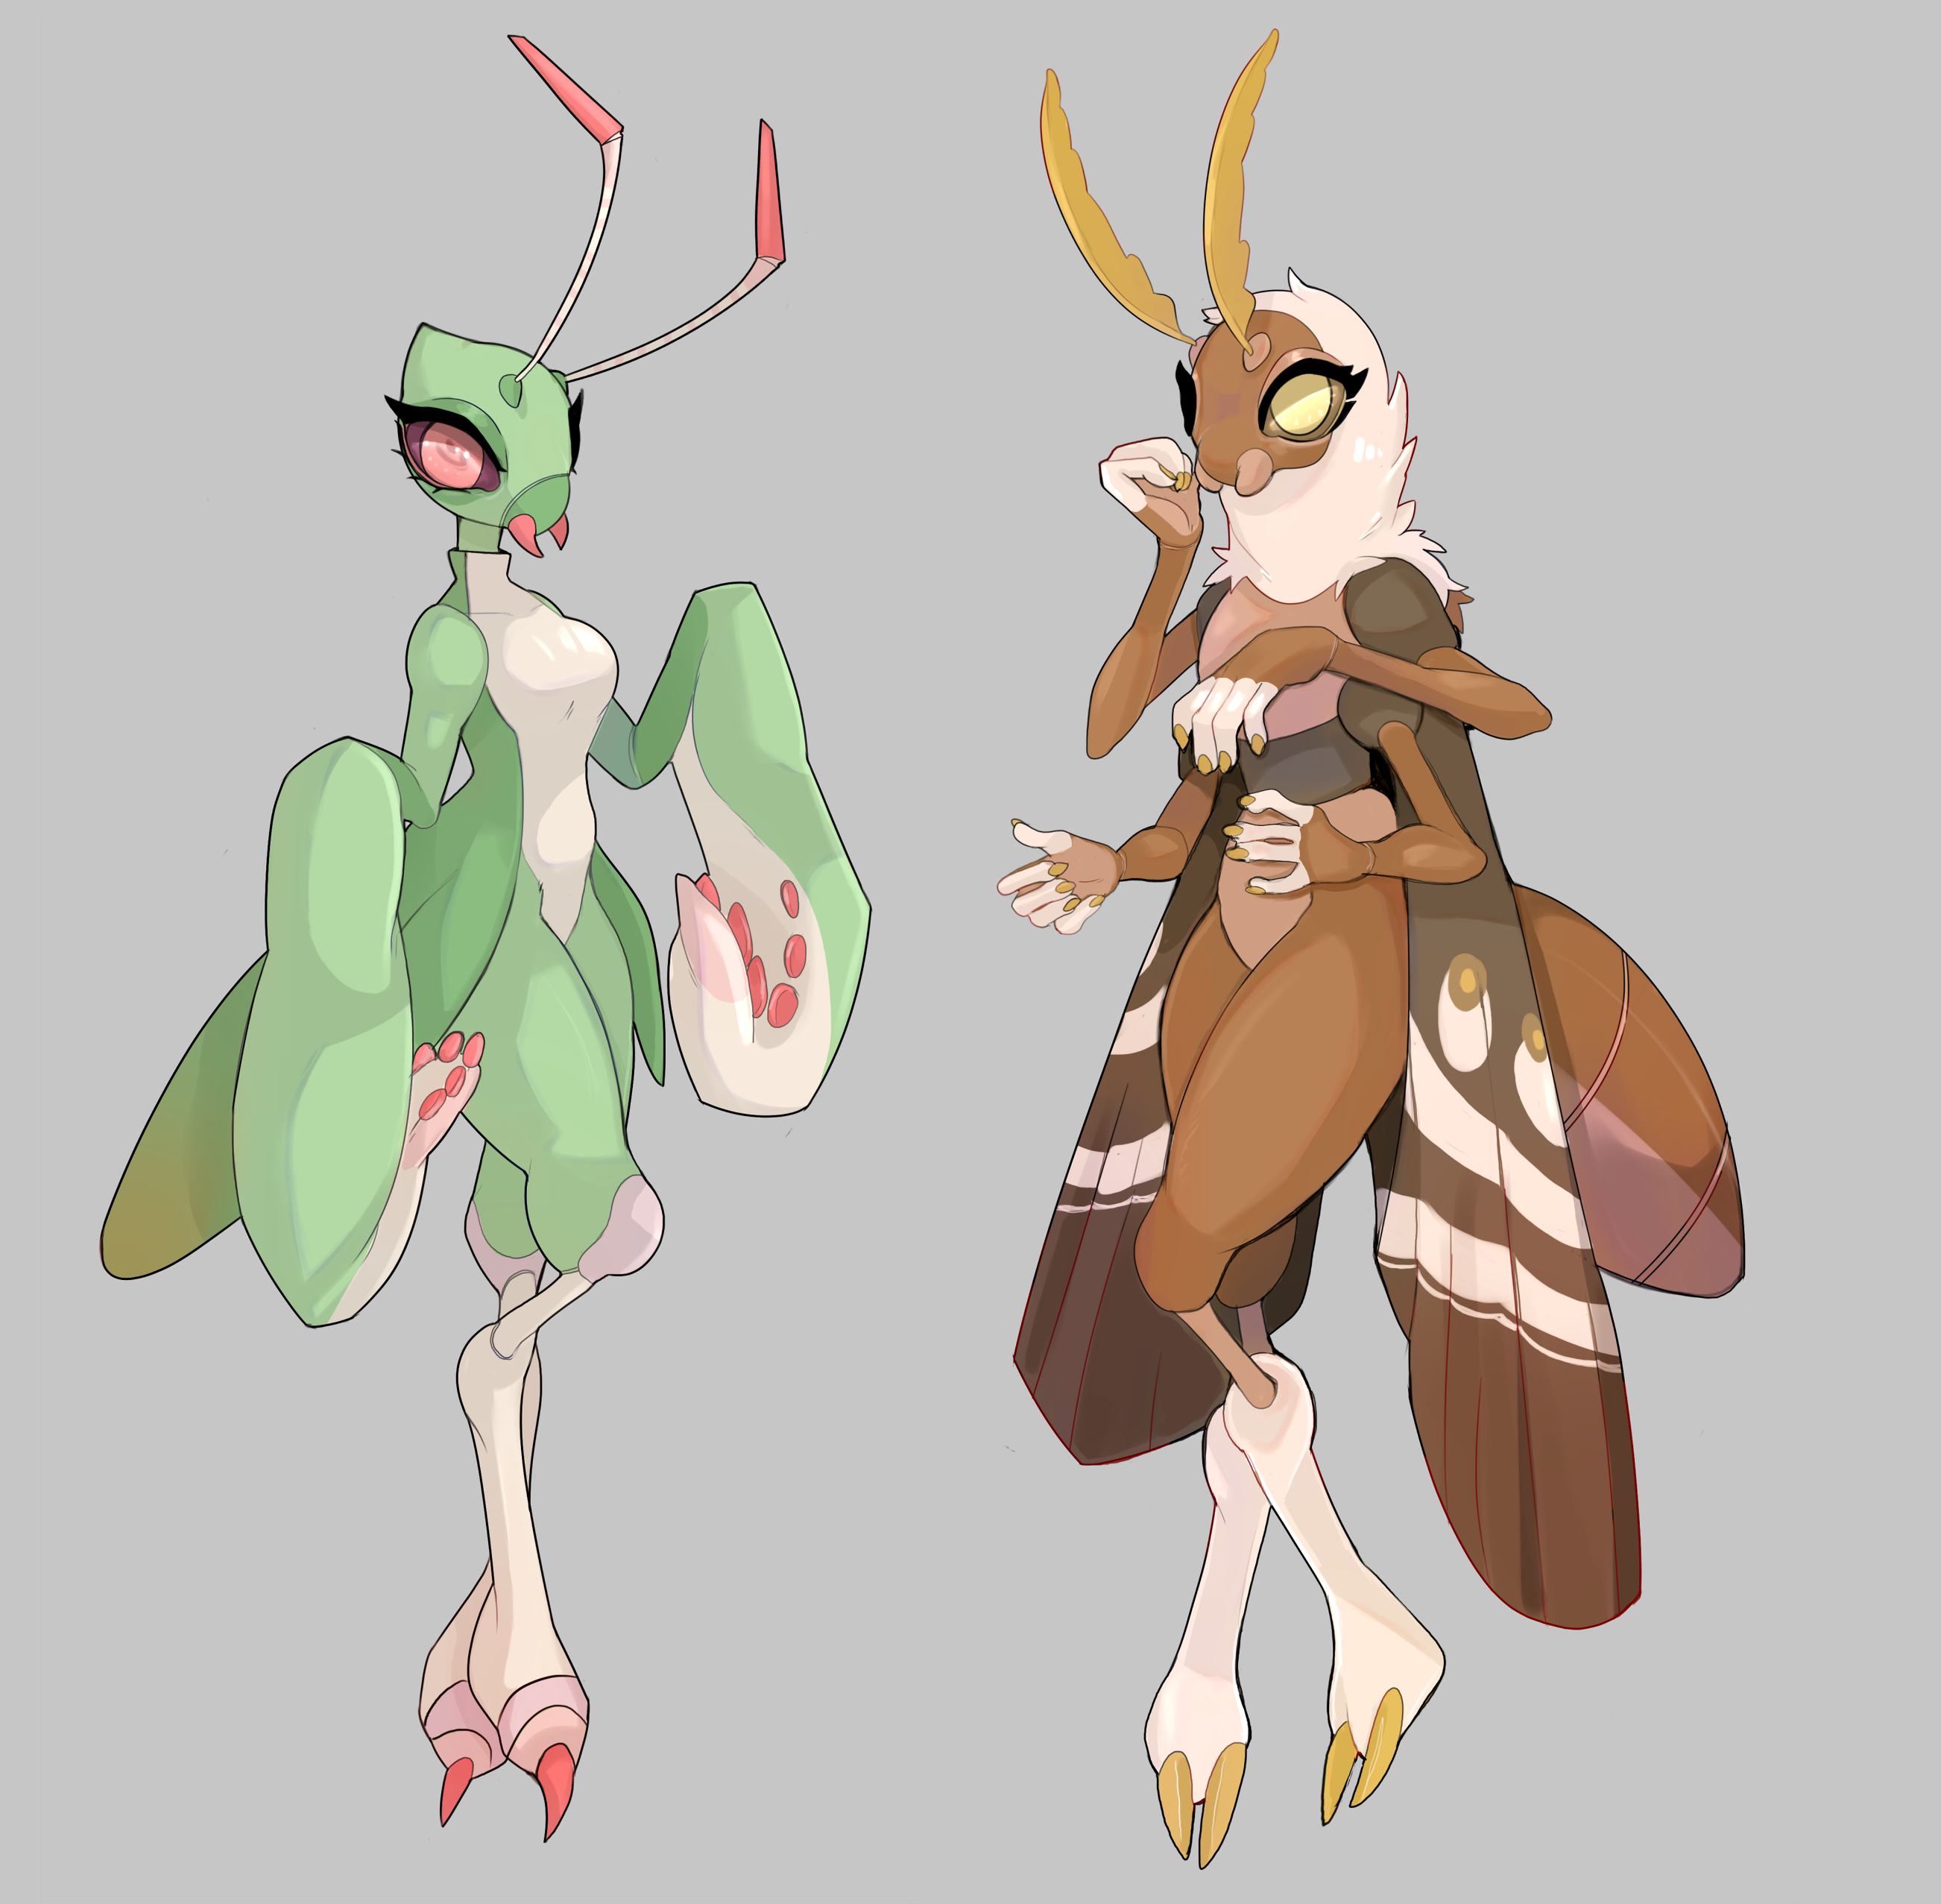 Insect waifus